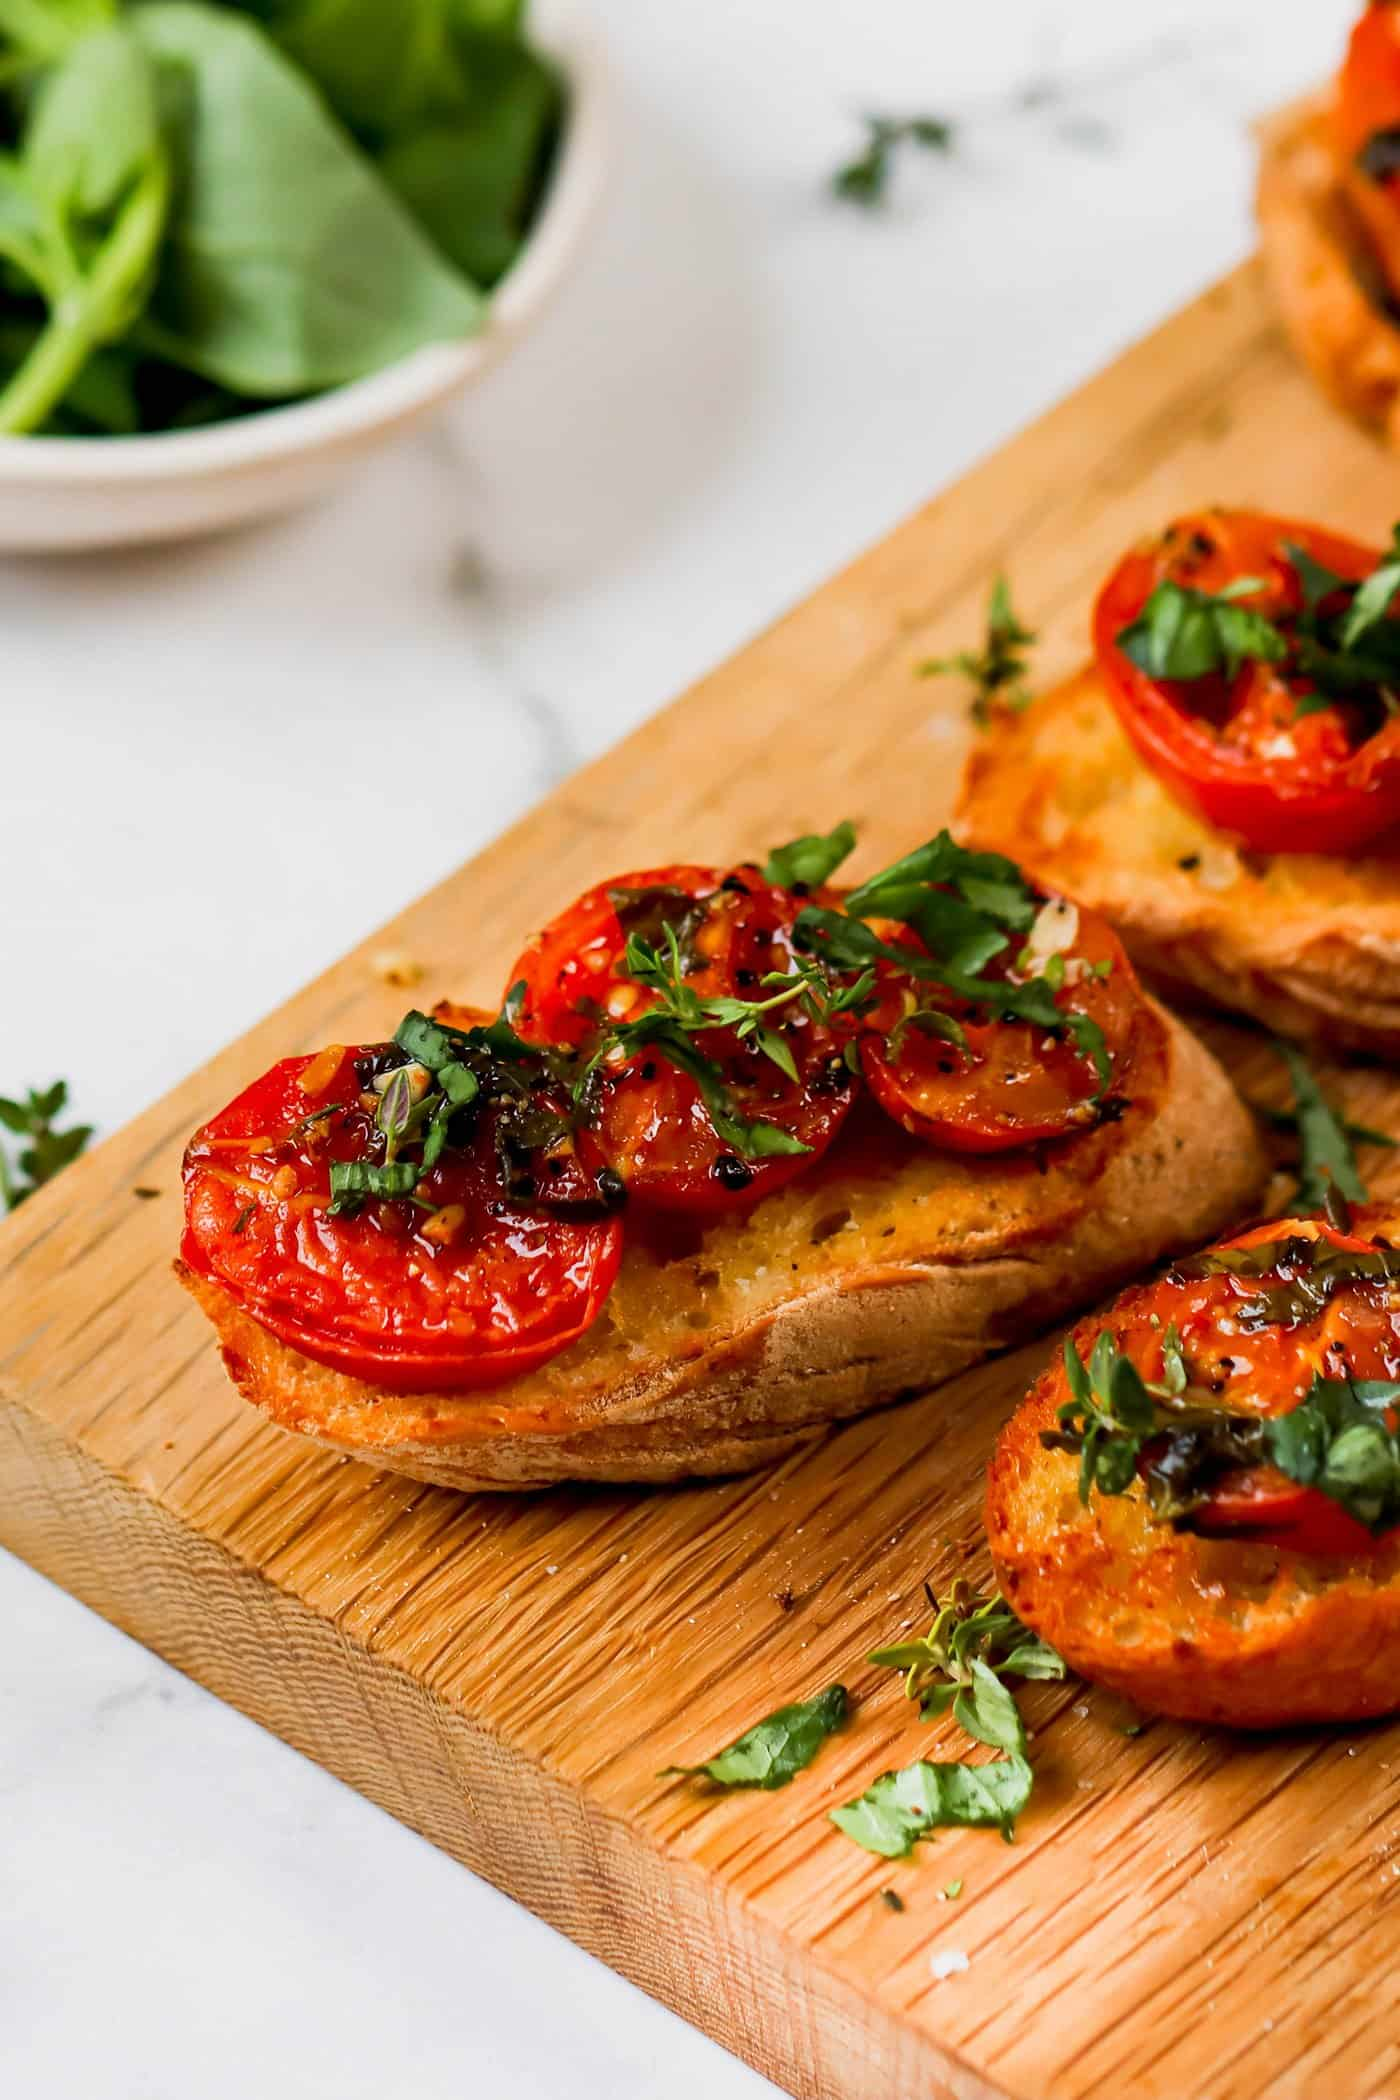 oven roasted tomatoes on toasted baguette slices